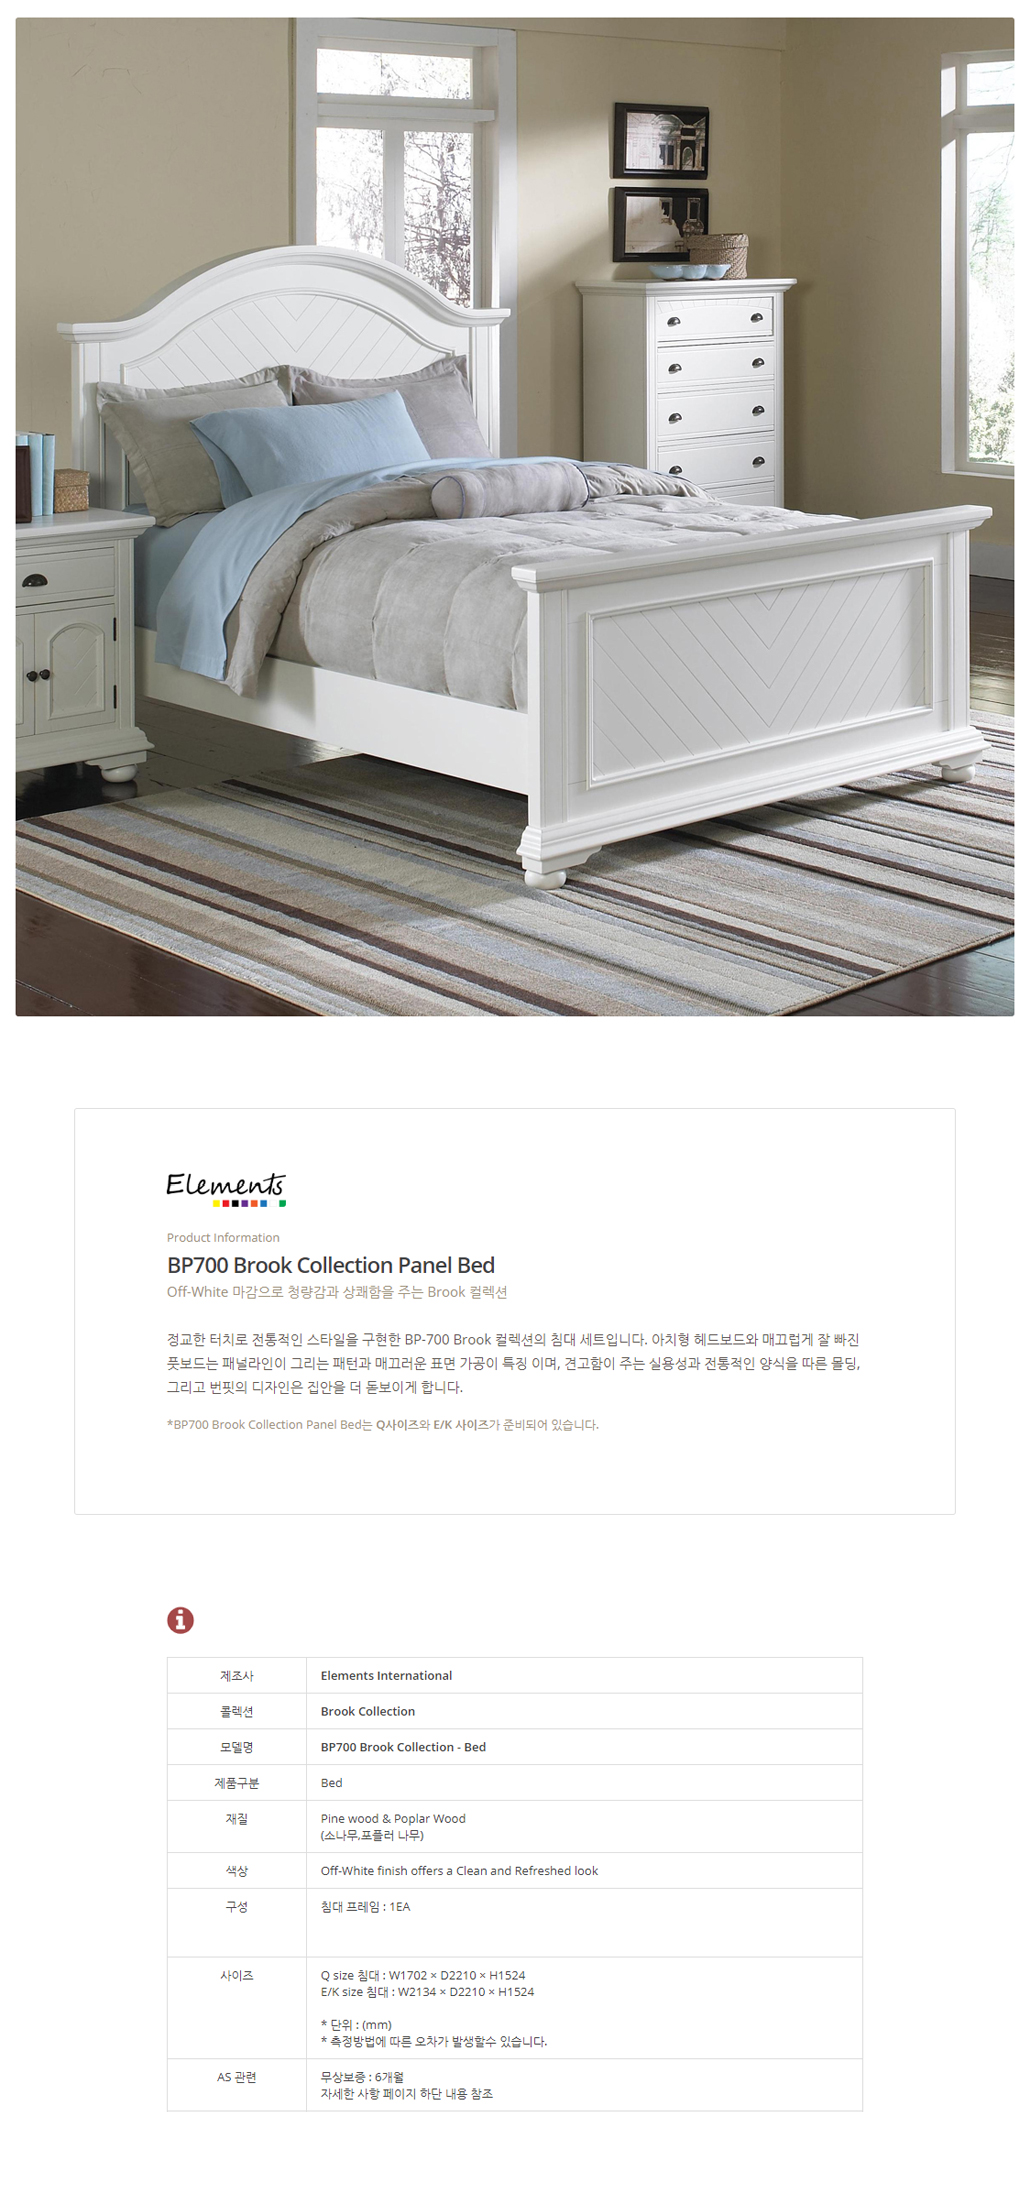 bp700_brook_collection_bed_01.jpg